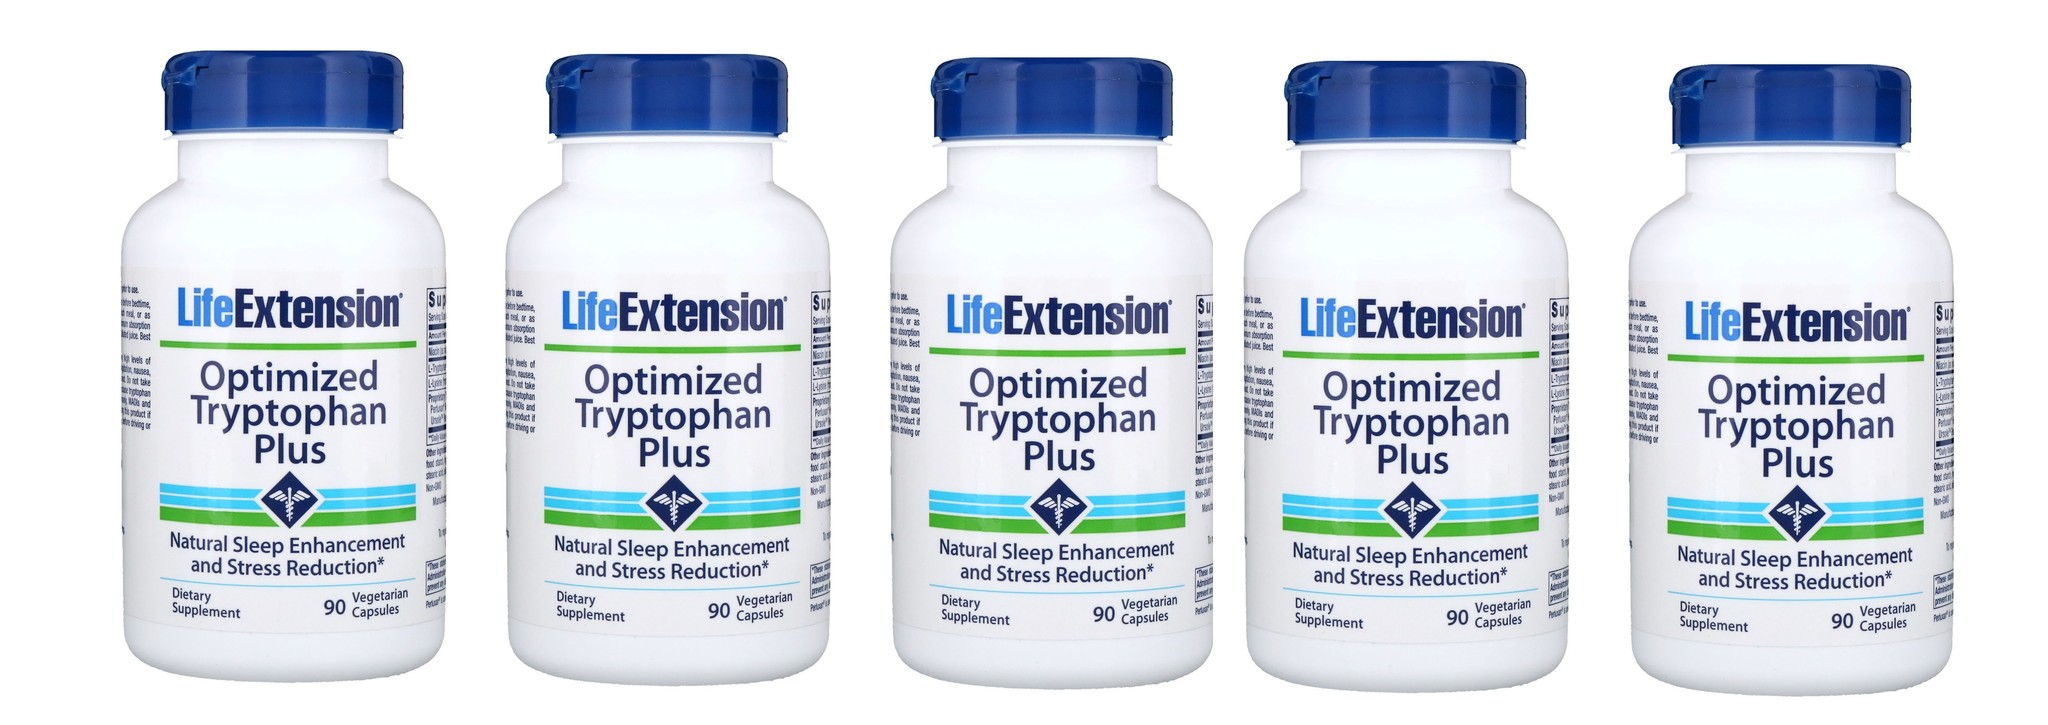 Life Extension Optimized Tryptophan Plus, 5-pack